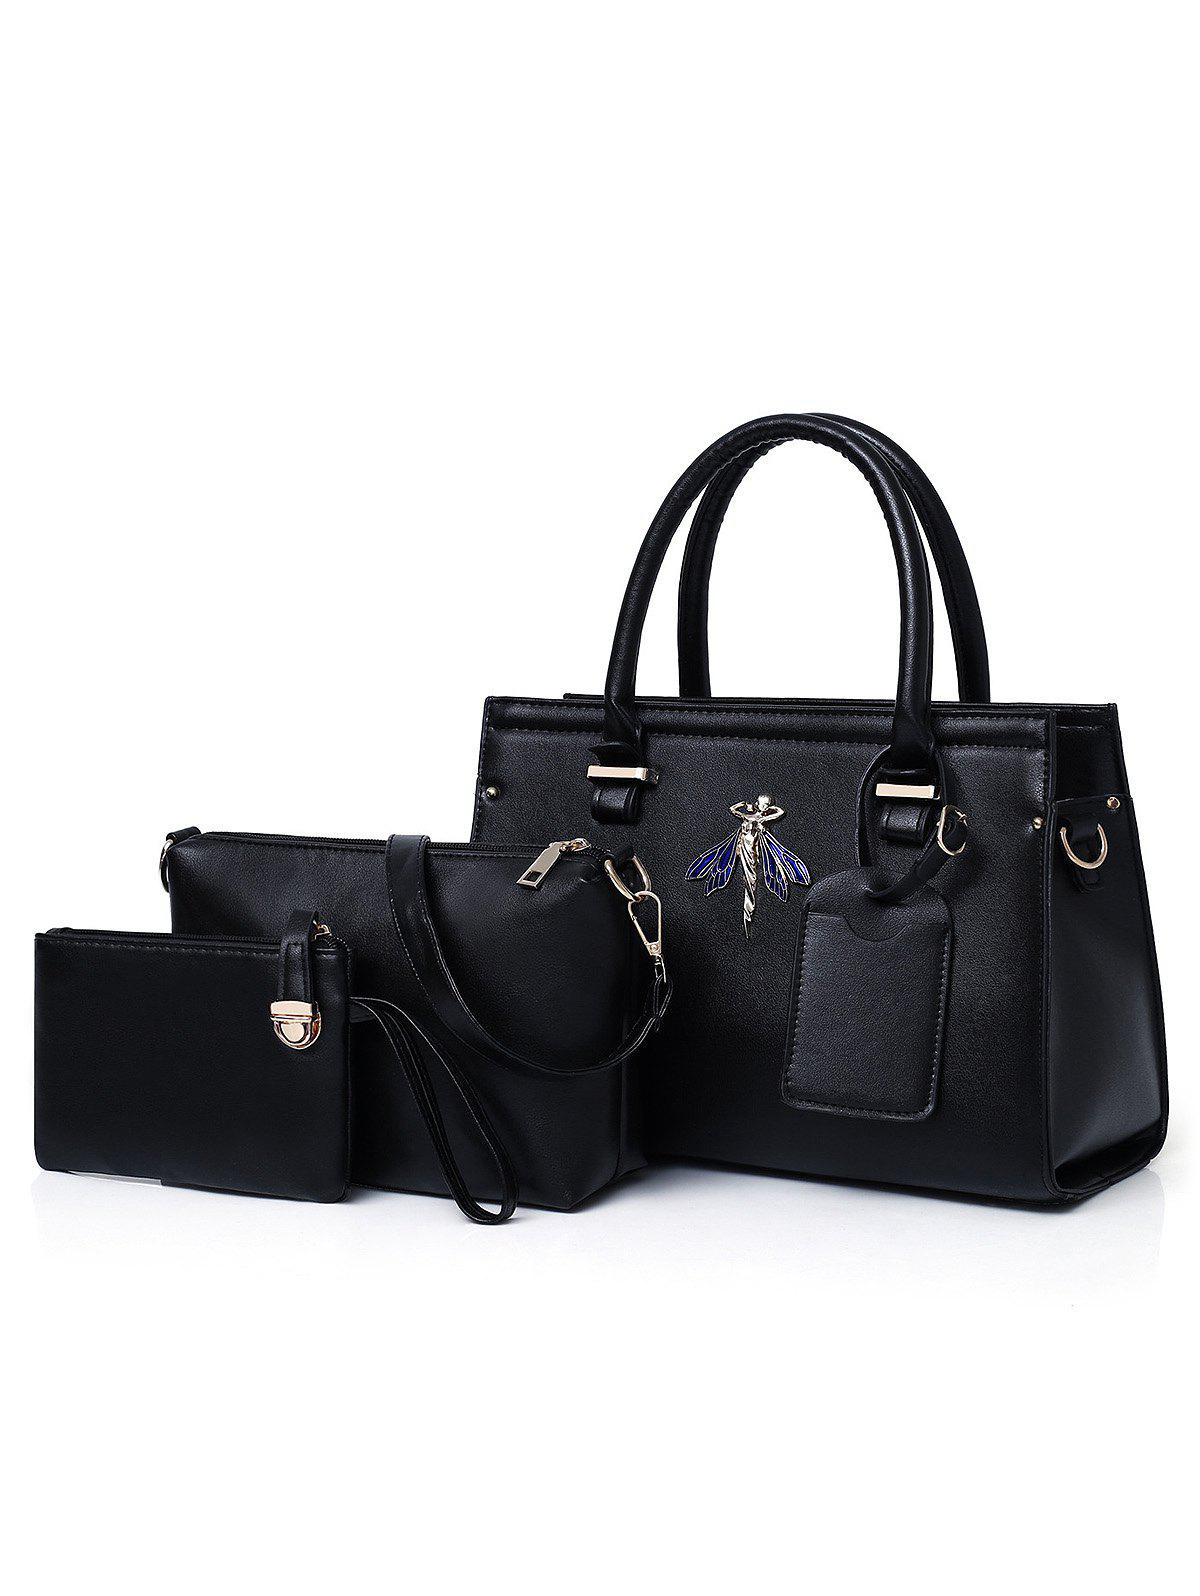 Top Handle Chic PU Leather 3 Pieces Handbag Set - BLACK